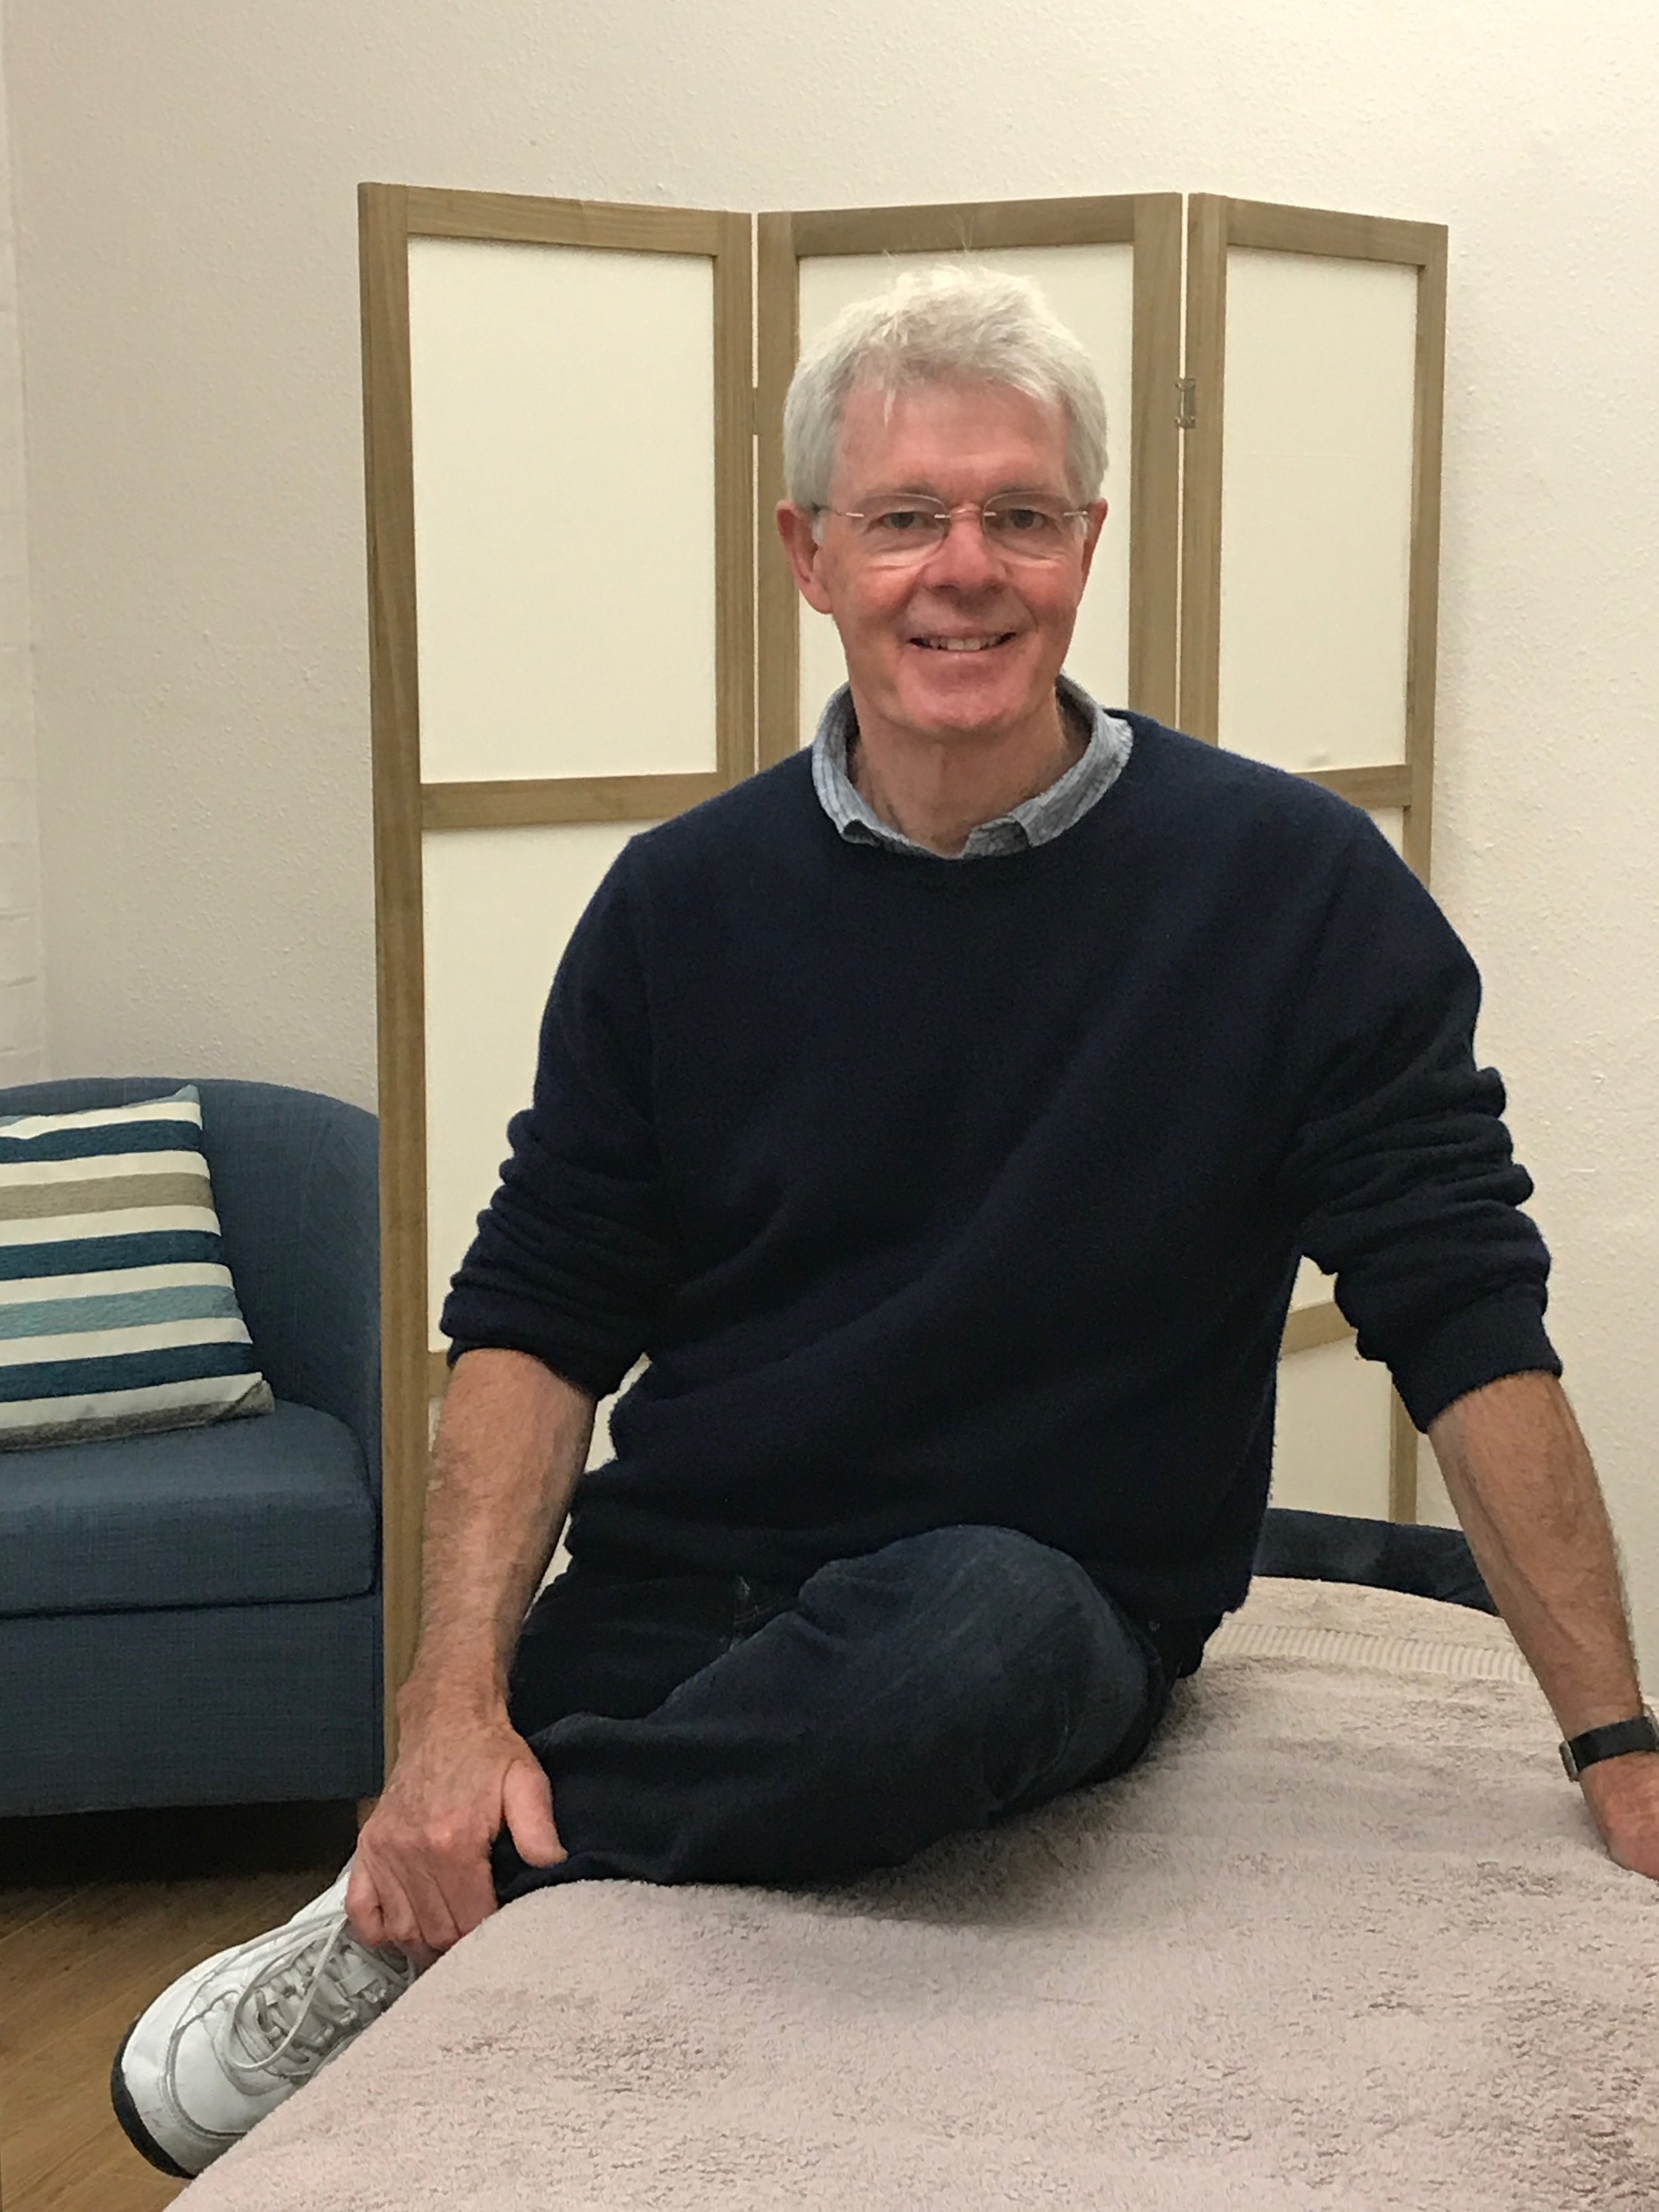 Will Wheen is a practitioner in Structural Massage at The Open Door clinic.